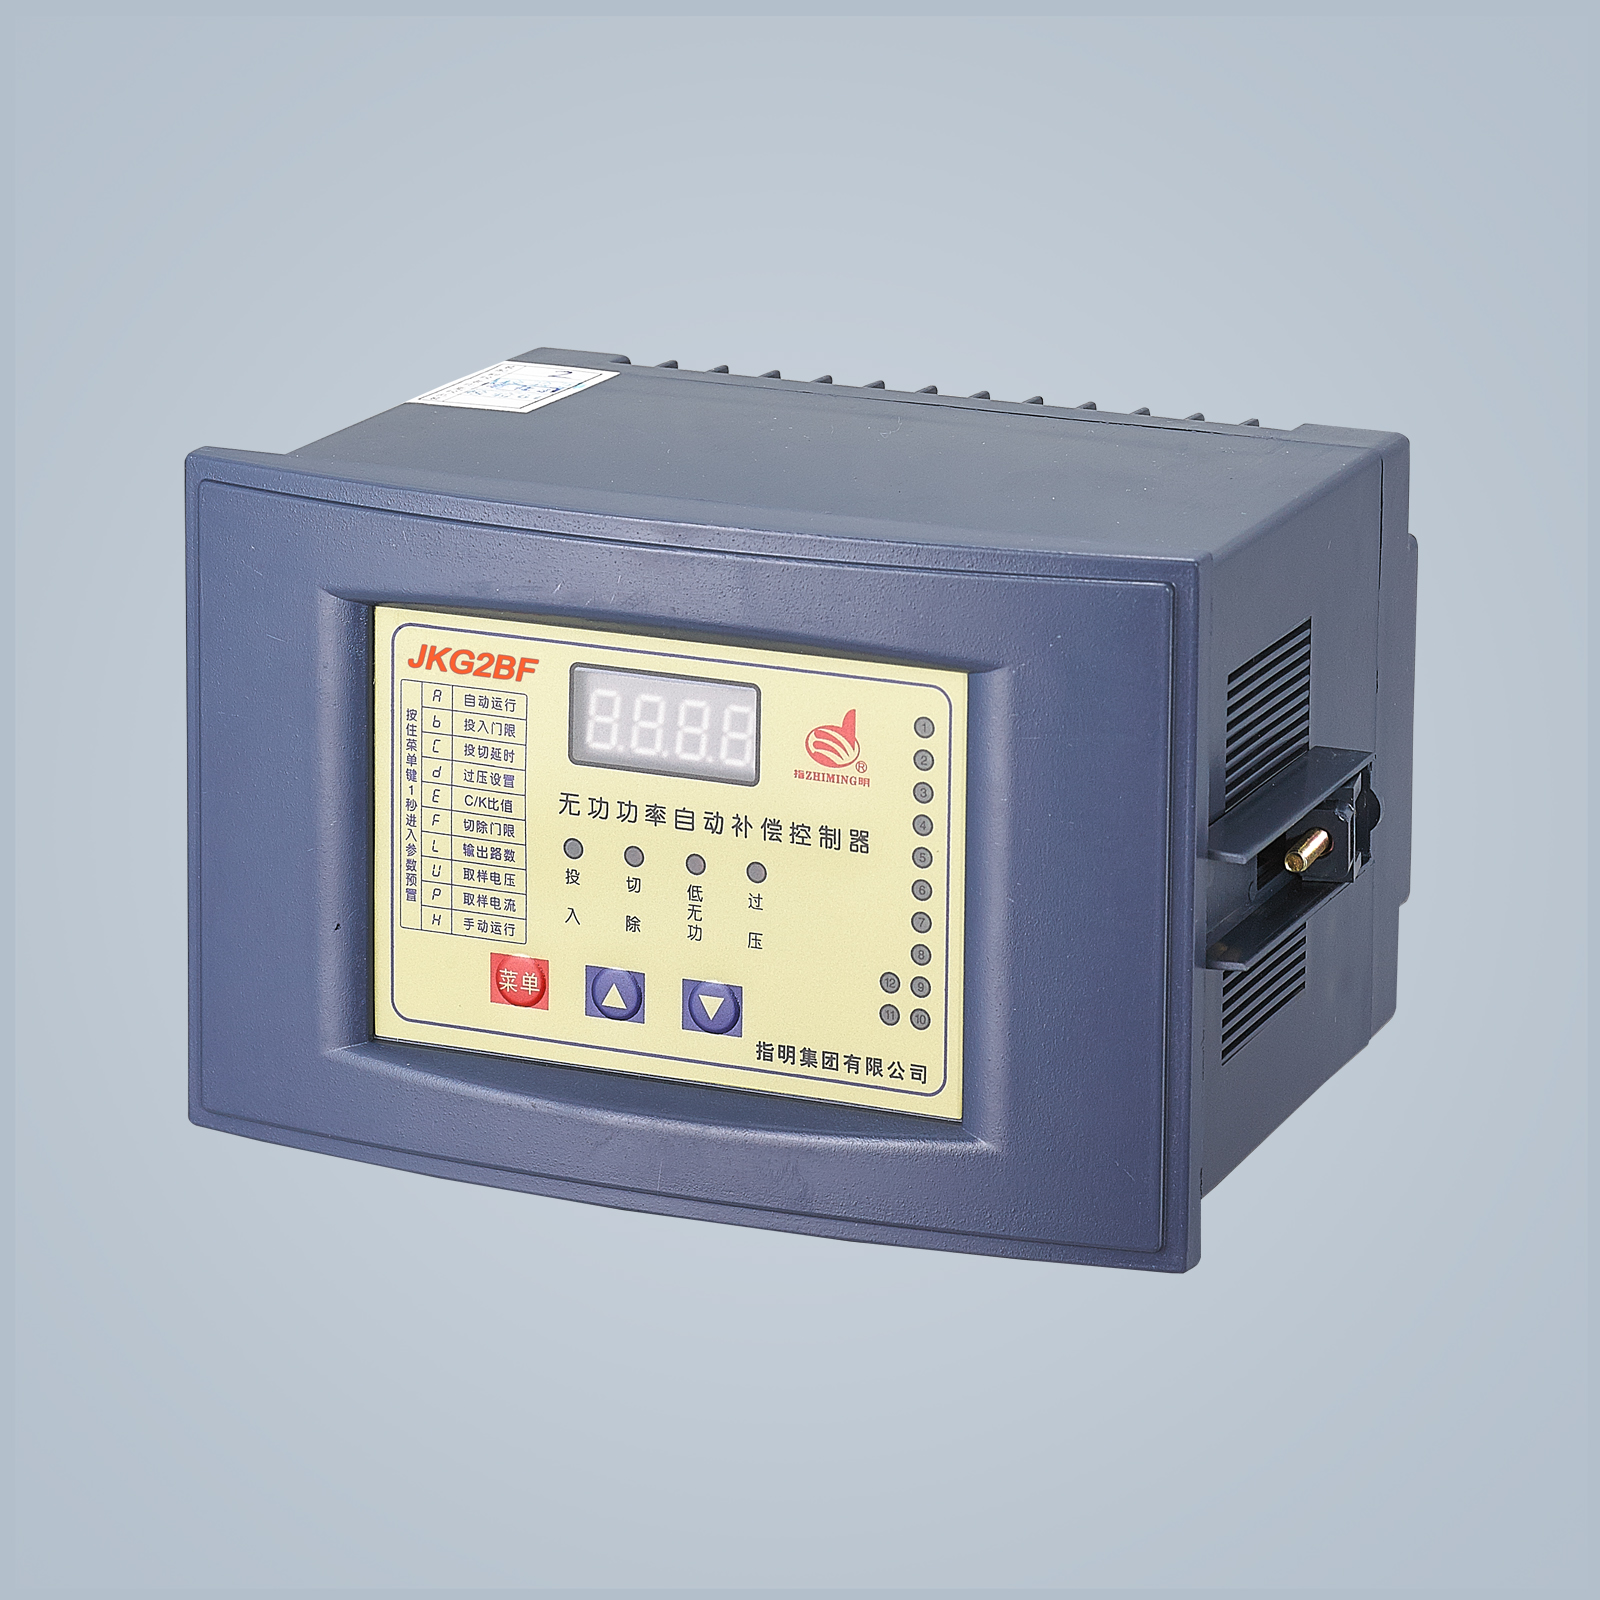 JKG2BF Series Reactive power auto-compen sation controller 220V